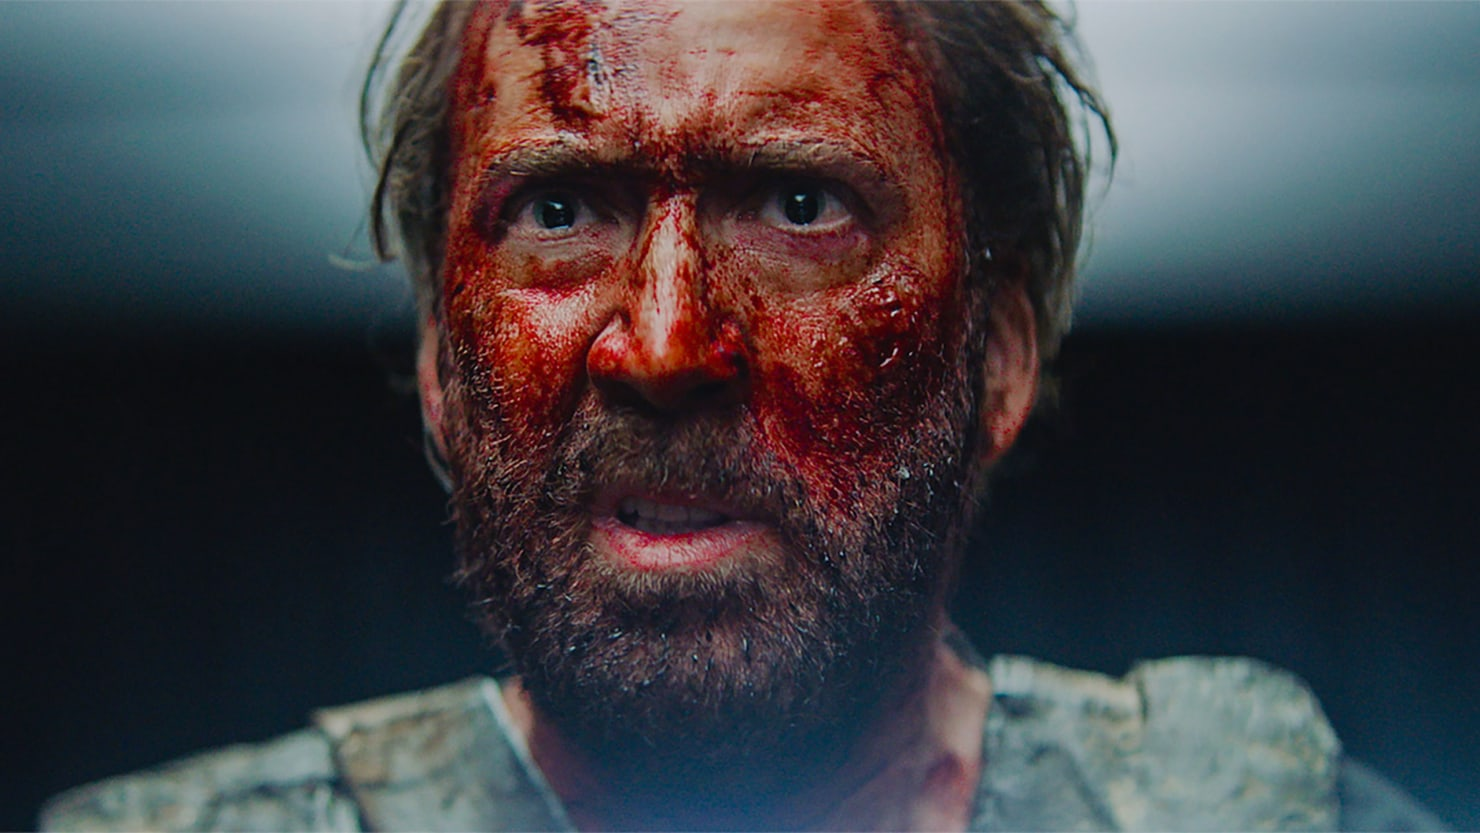 Nicolas Cage on Going Where Few Actors Dare: 'I Didn't Get Into This for Awards'